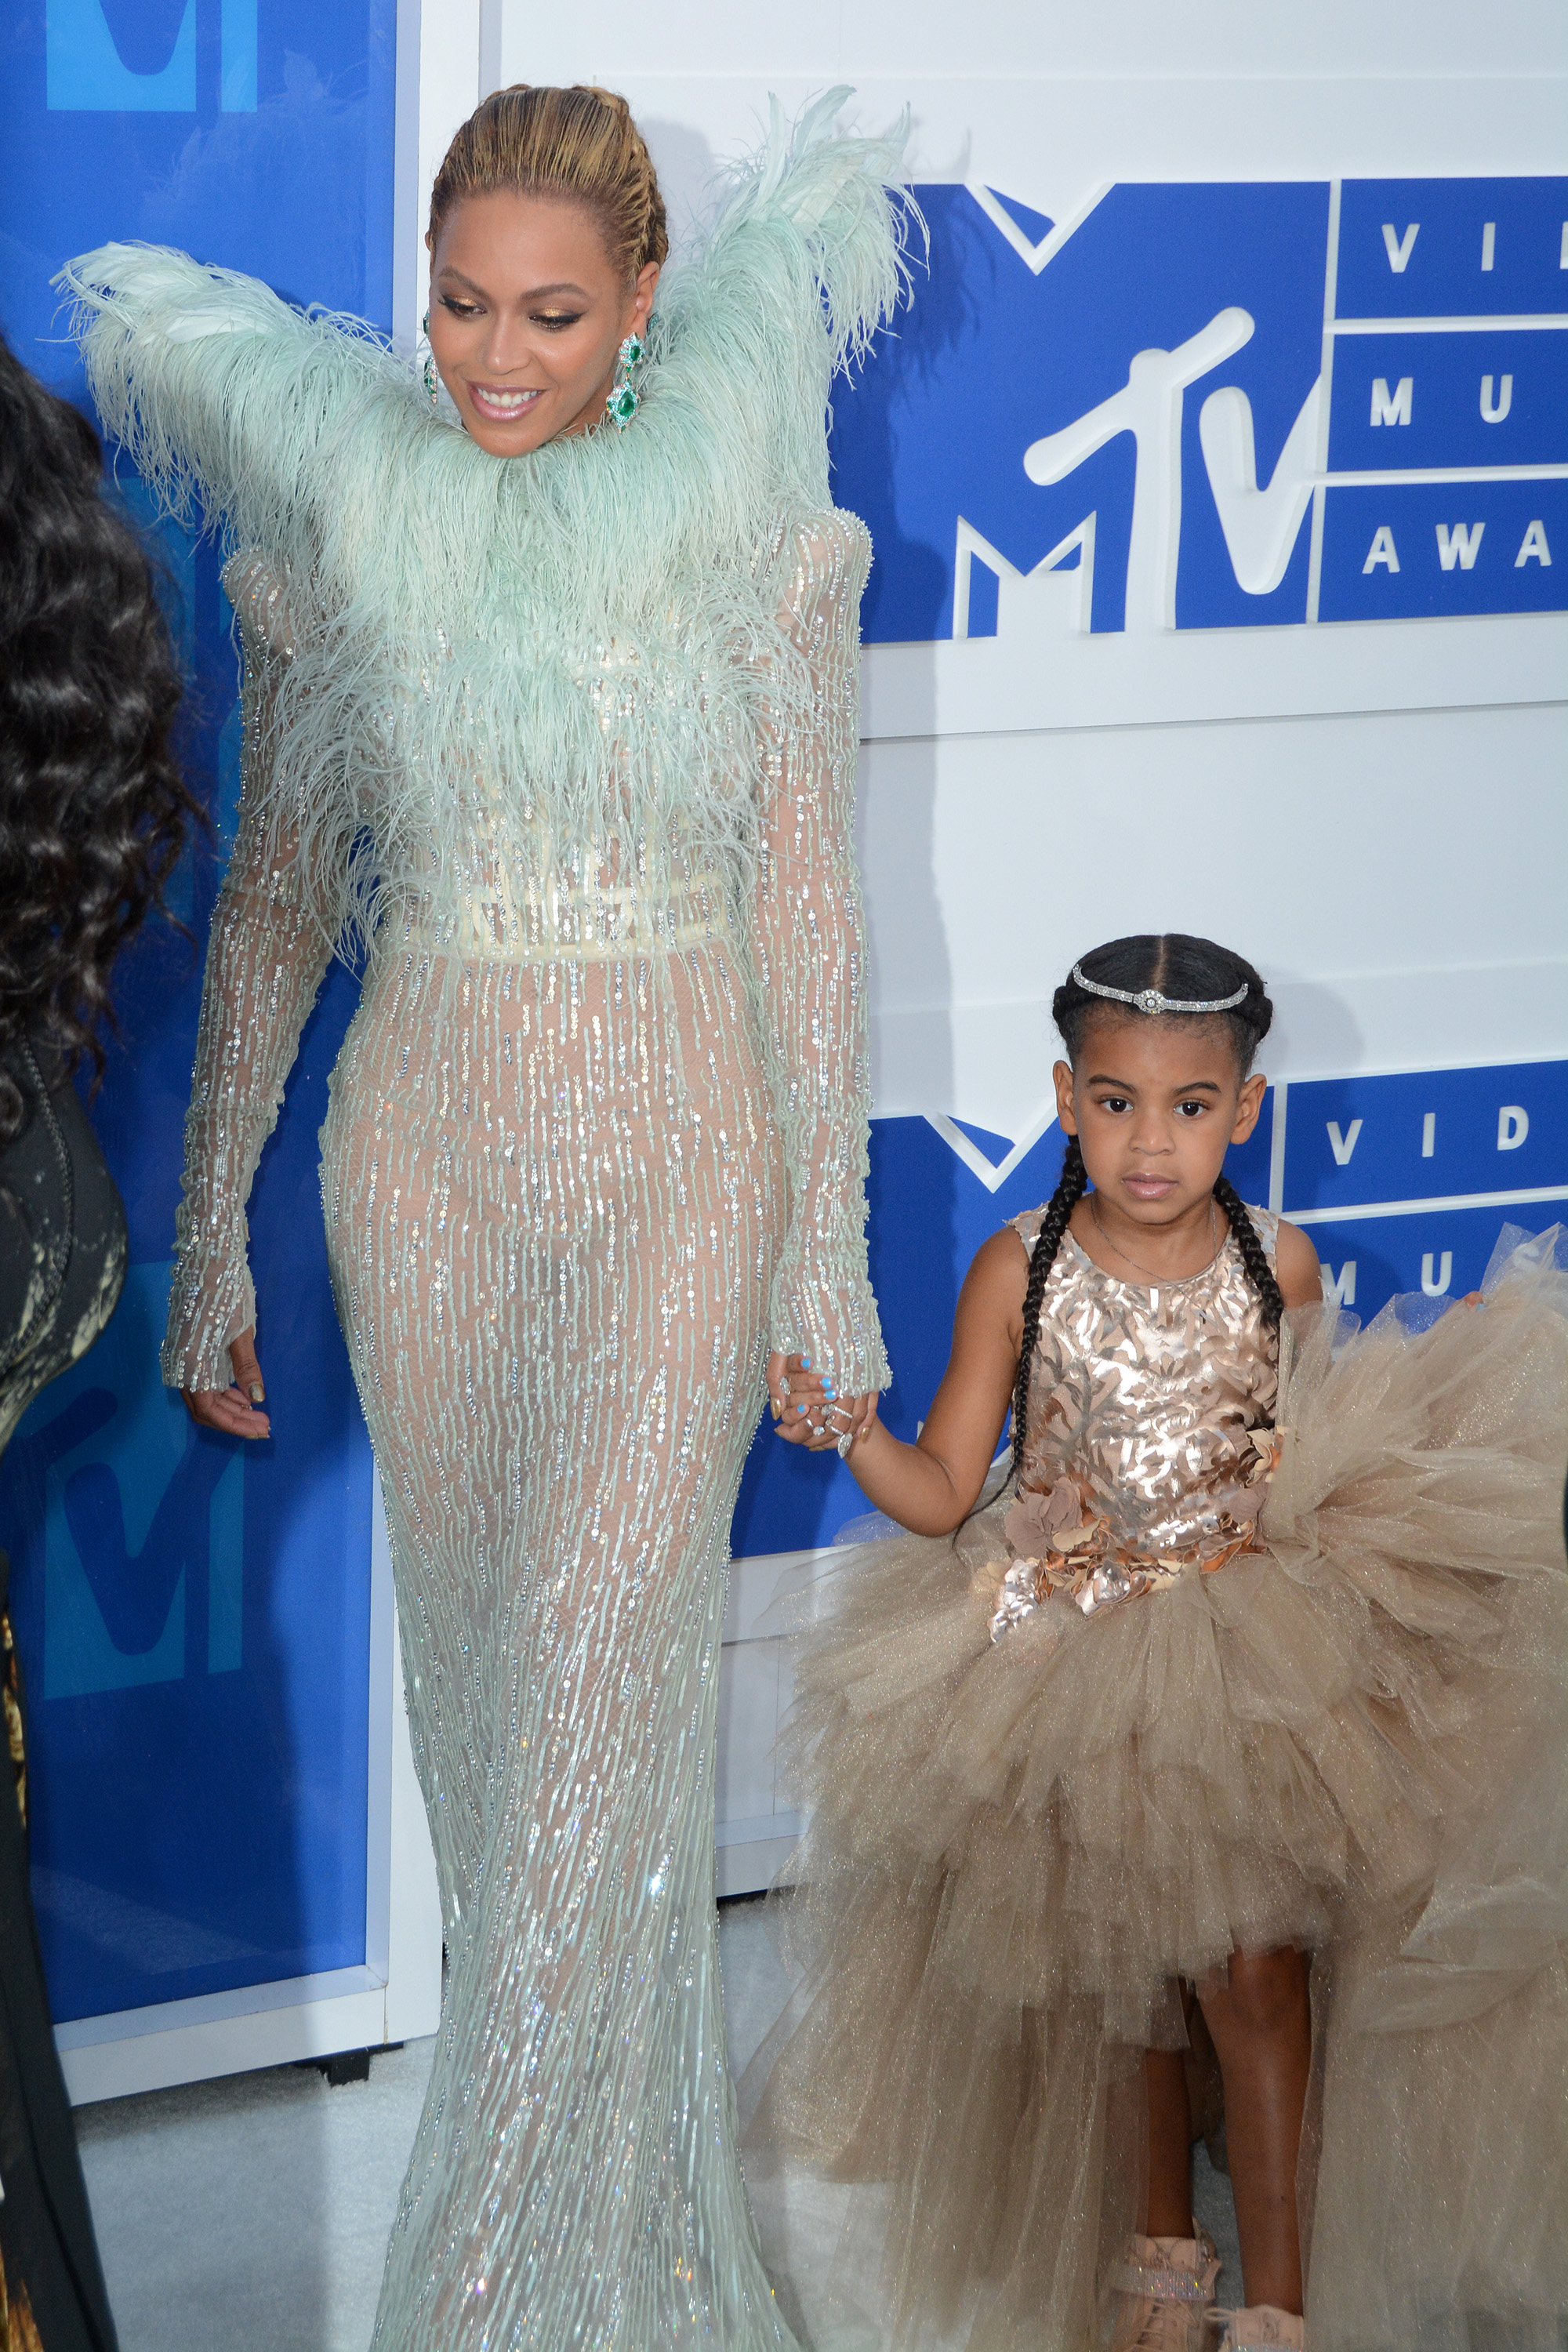 2016 MTV Video Music Awards - Red Carpet ArrivalsFeaturing: Beyonce, Blue Ivy CarterWhere: New York, New York, United StatesWhen: 29 Aug 2016Credit: Ivan Nikolov/WENN.com